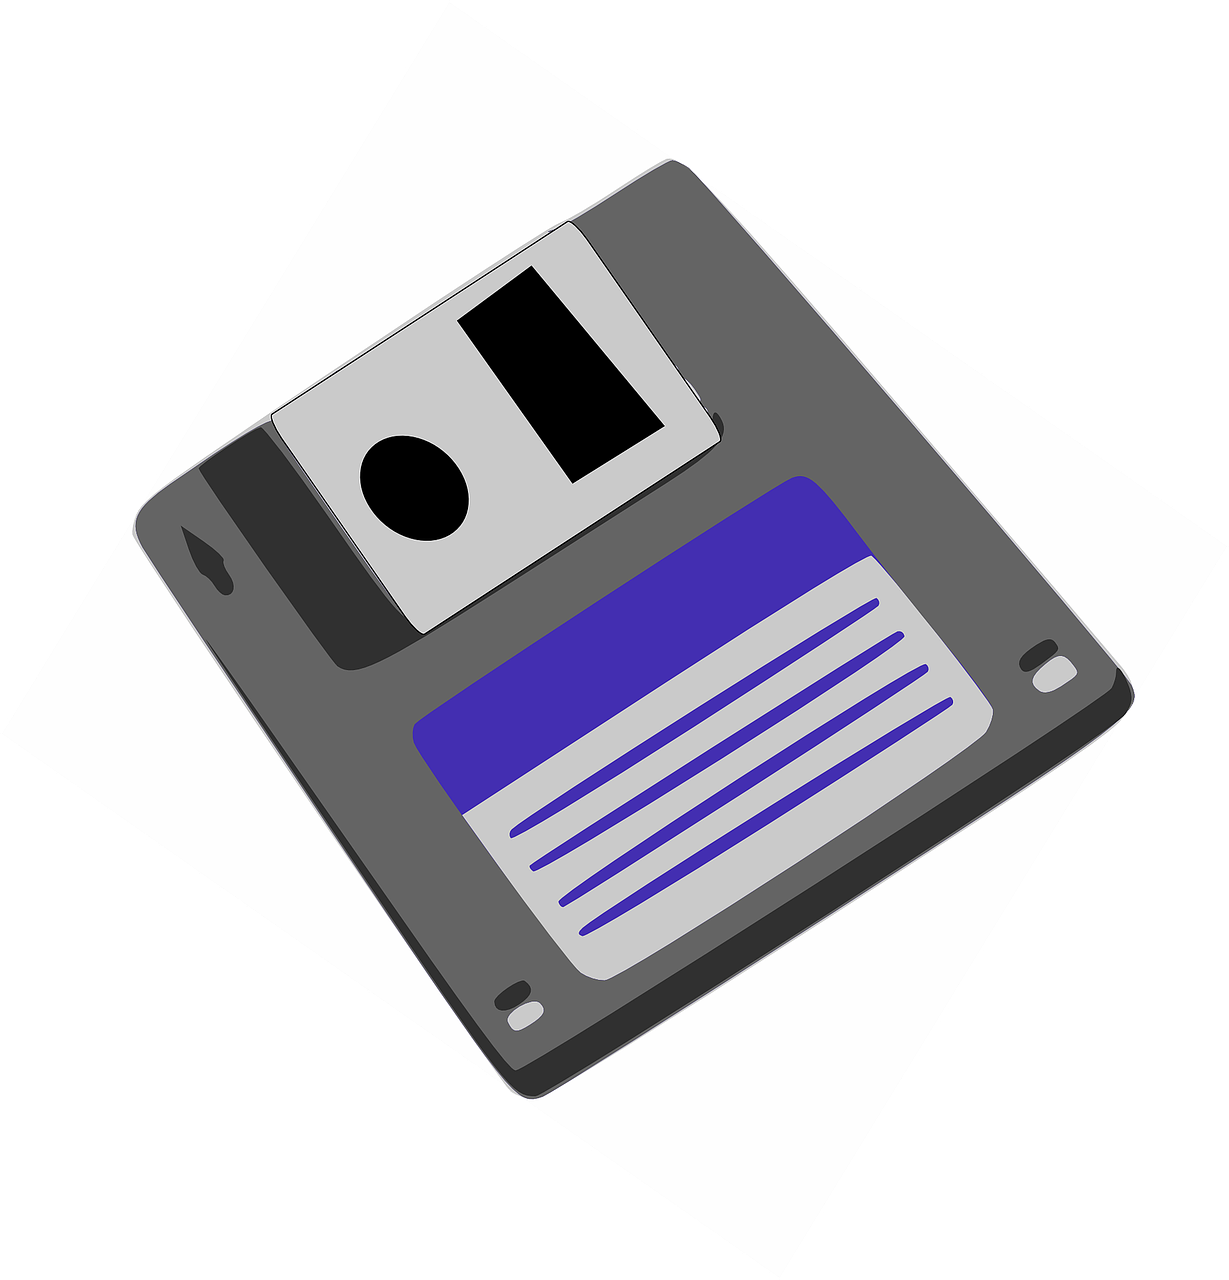 floppy disk magnetic free photo